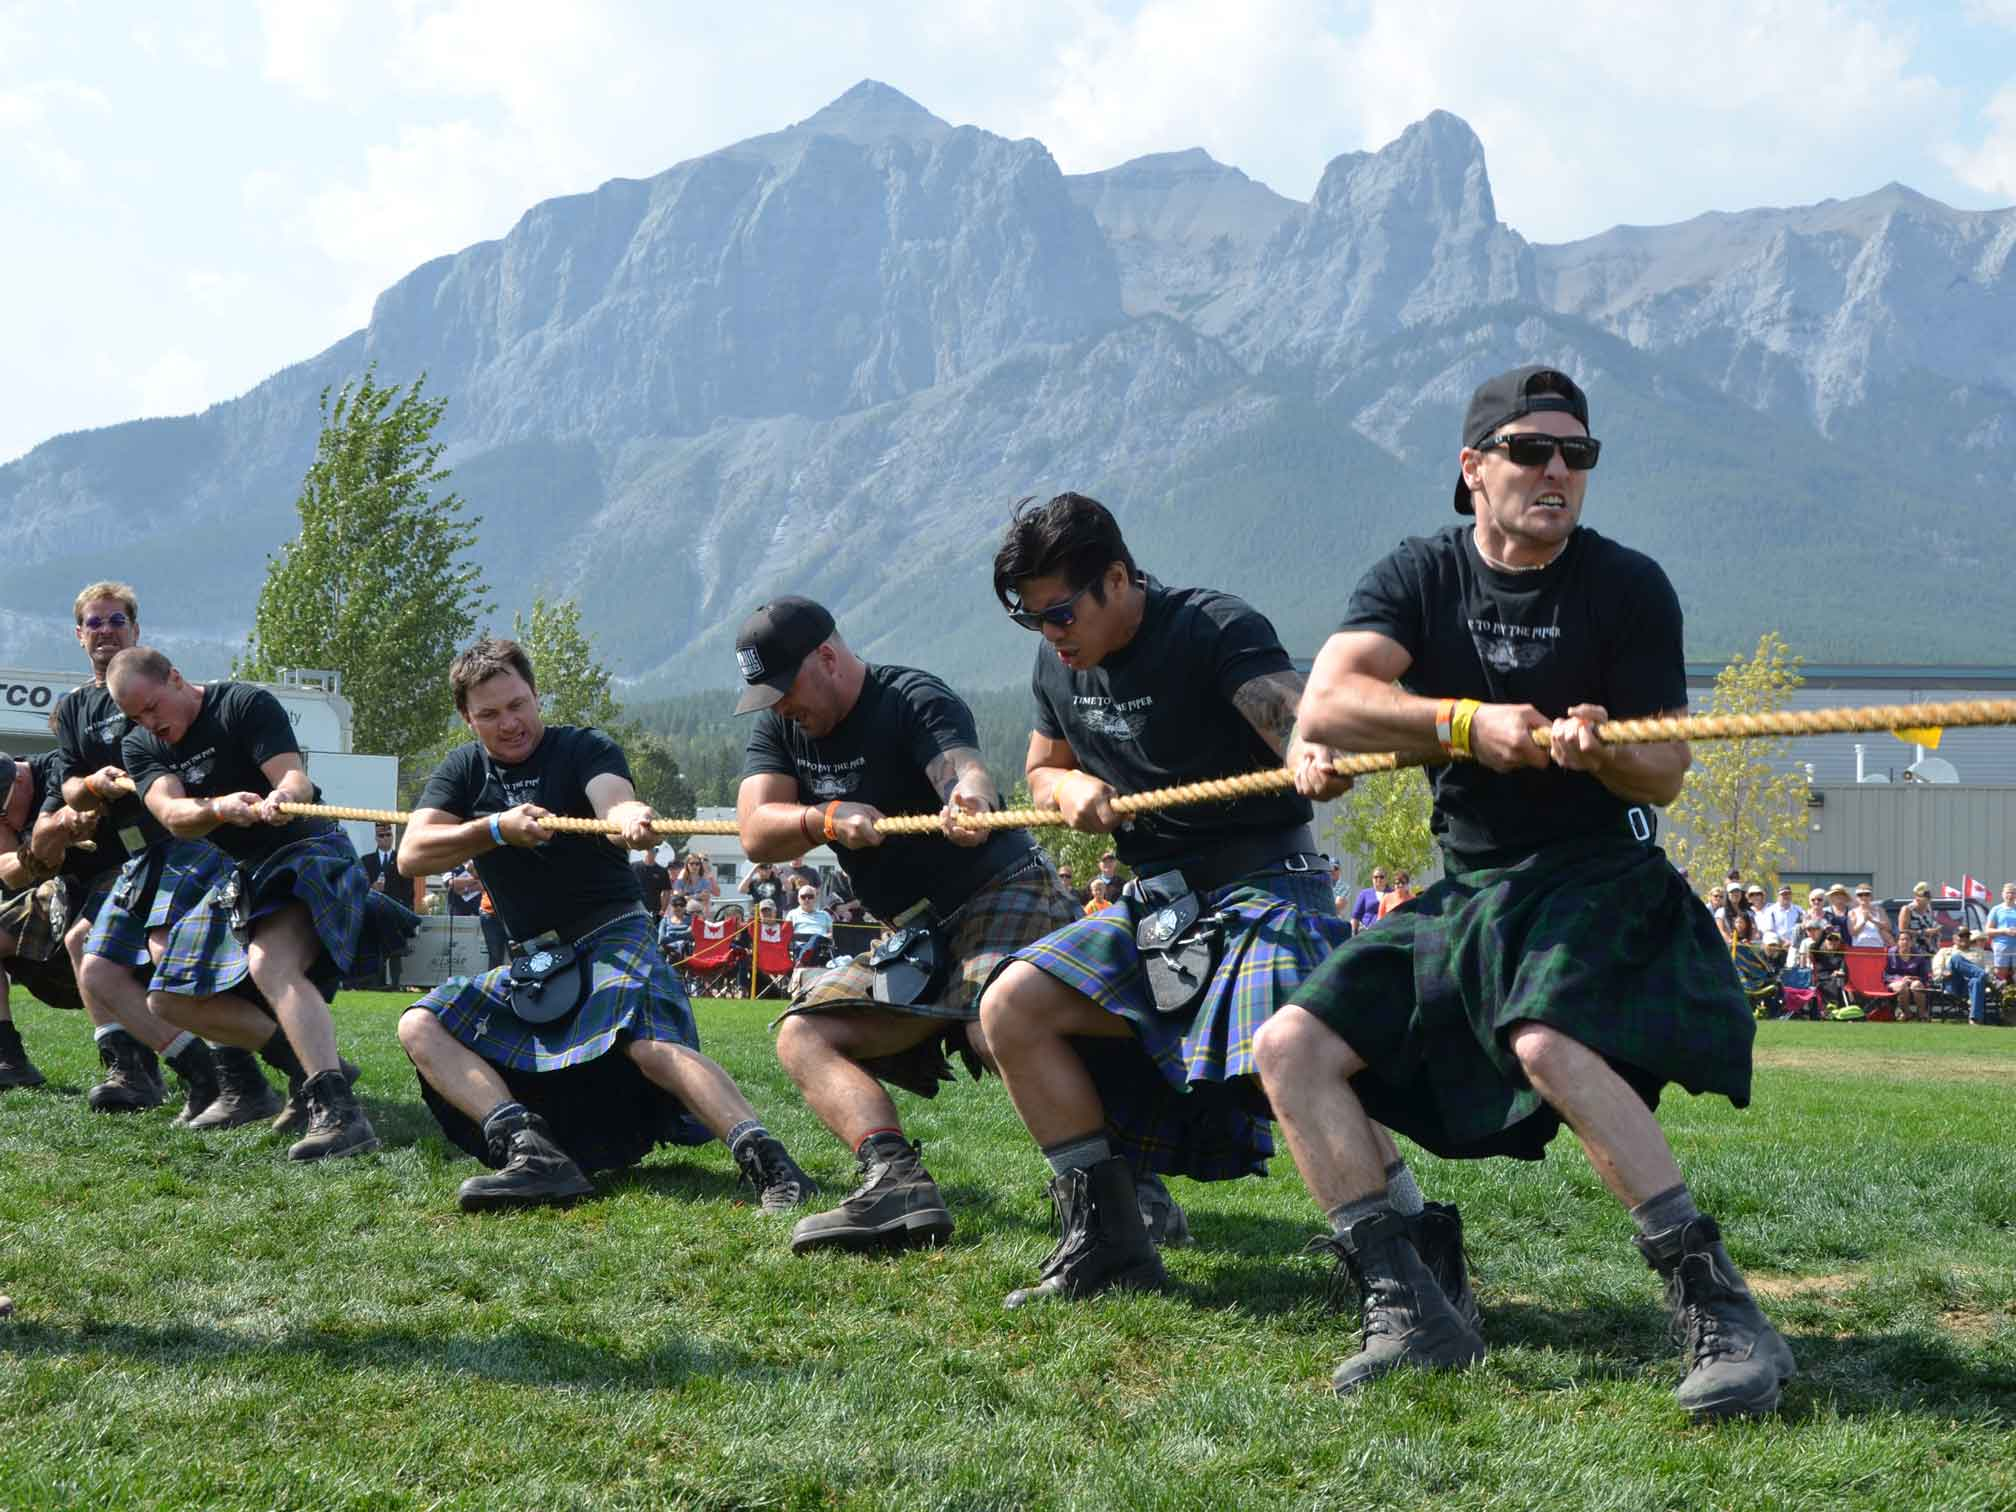 Tug of war at Canmore Highland Games